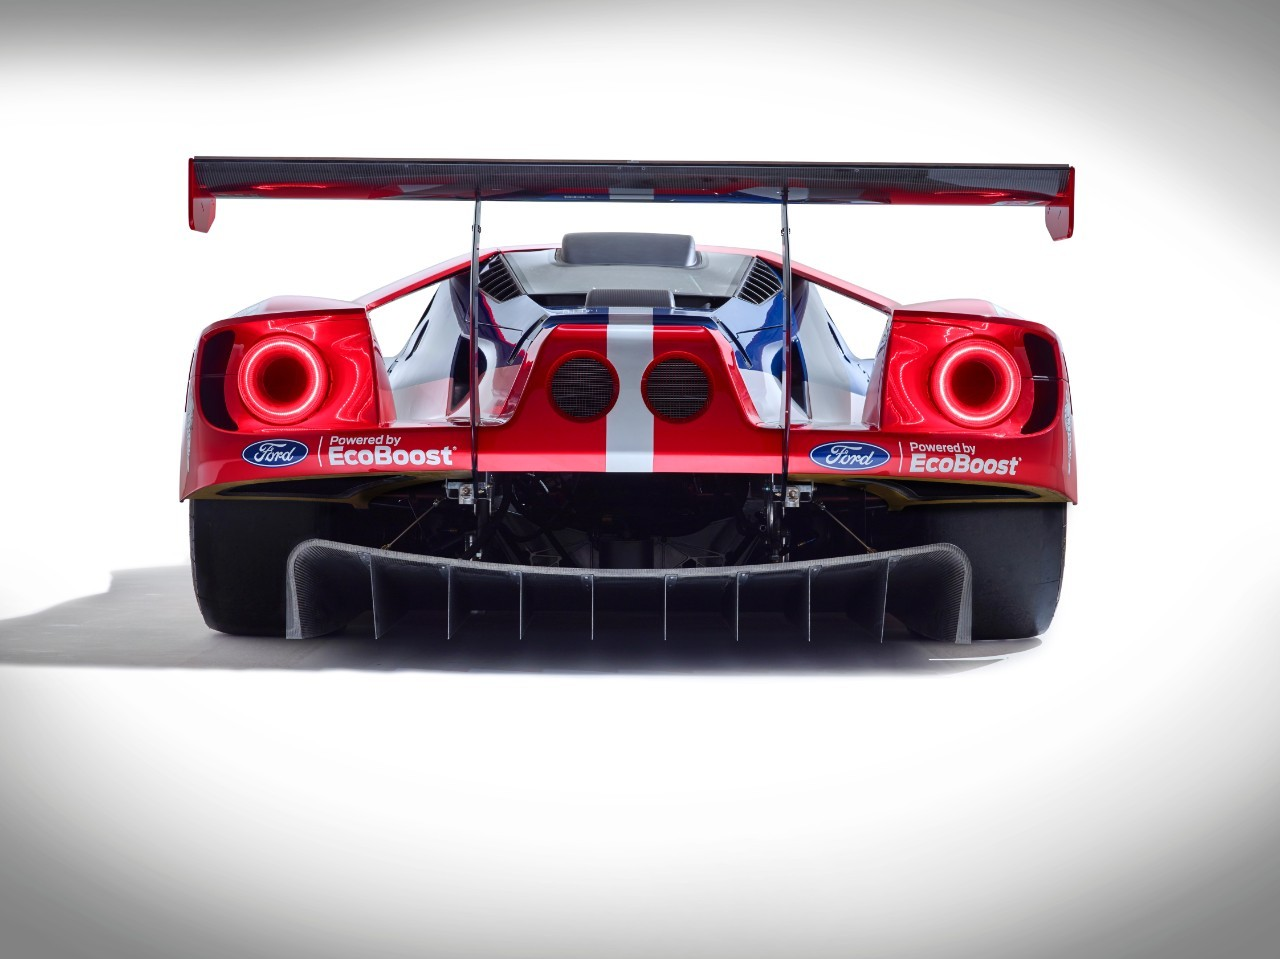 Furniture of america clint twin metal race car bed in red - Ford Gt Le Mans Racecar Confirmed To Debut